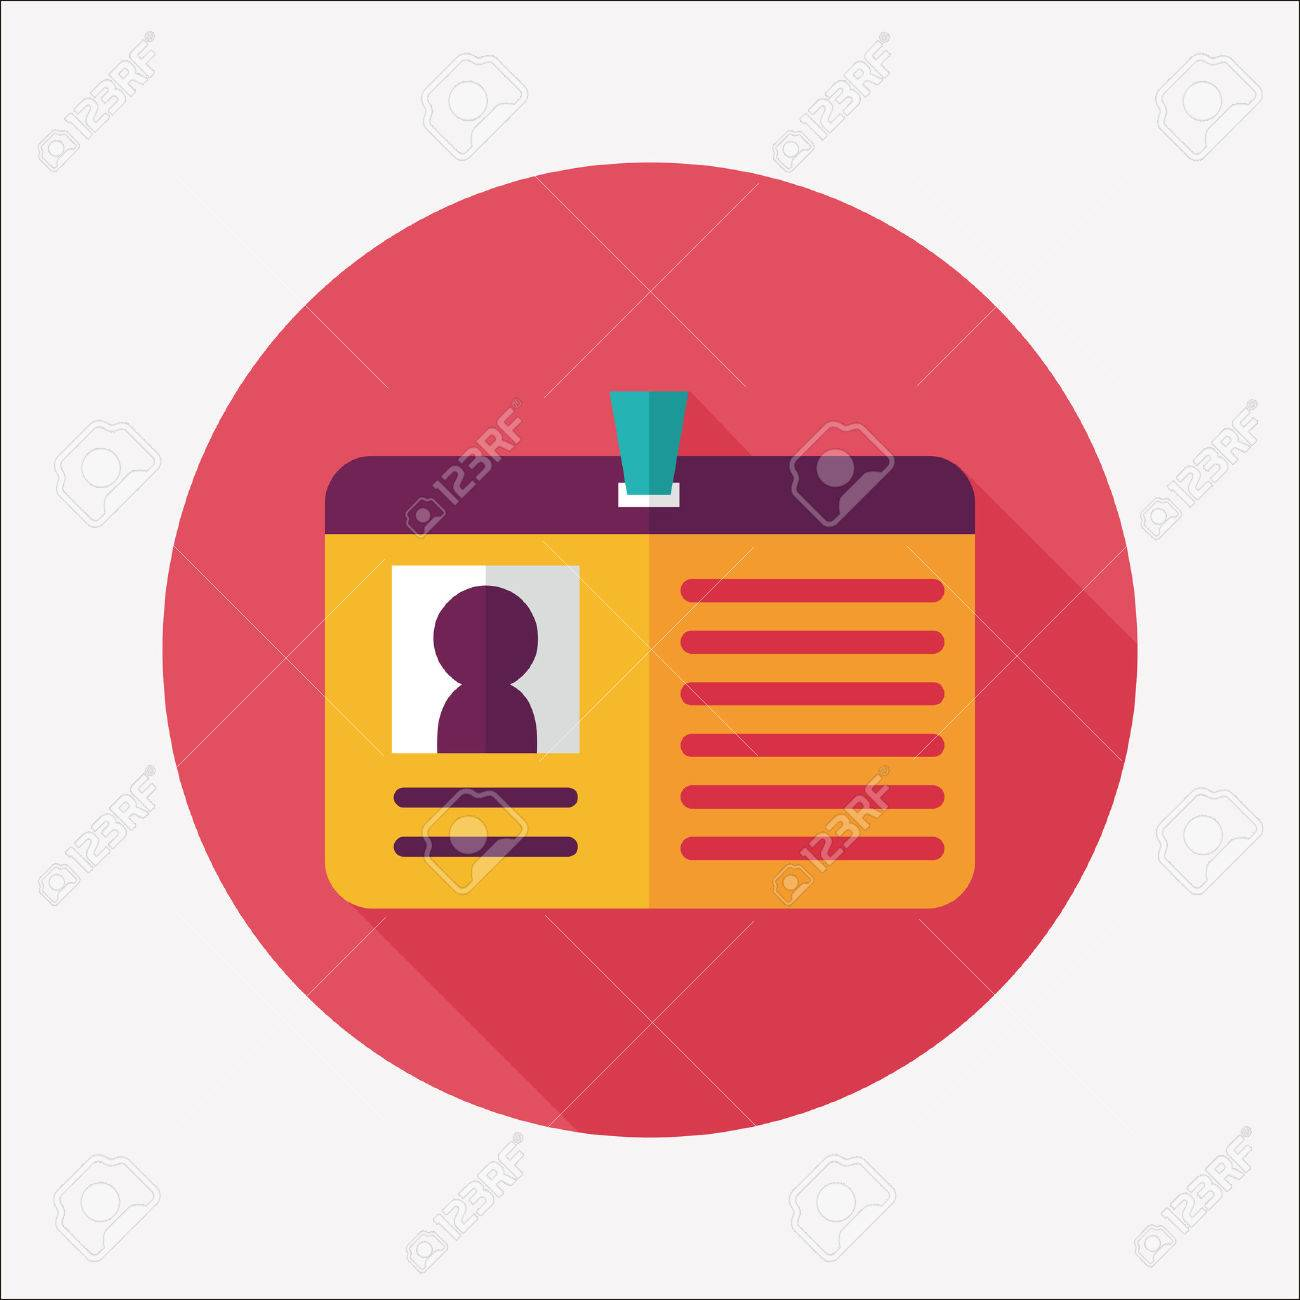 Identification card flat icon with long shadow - 31698339